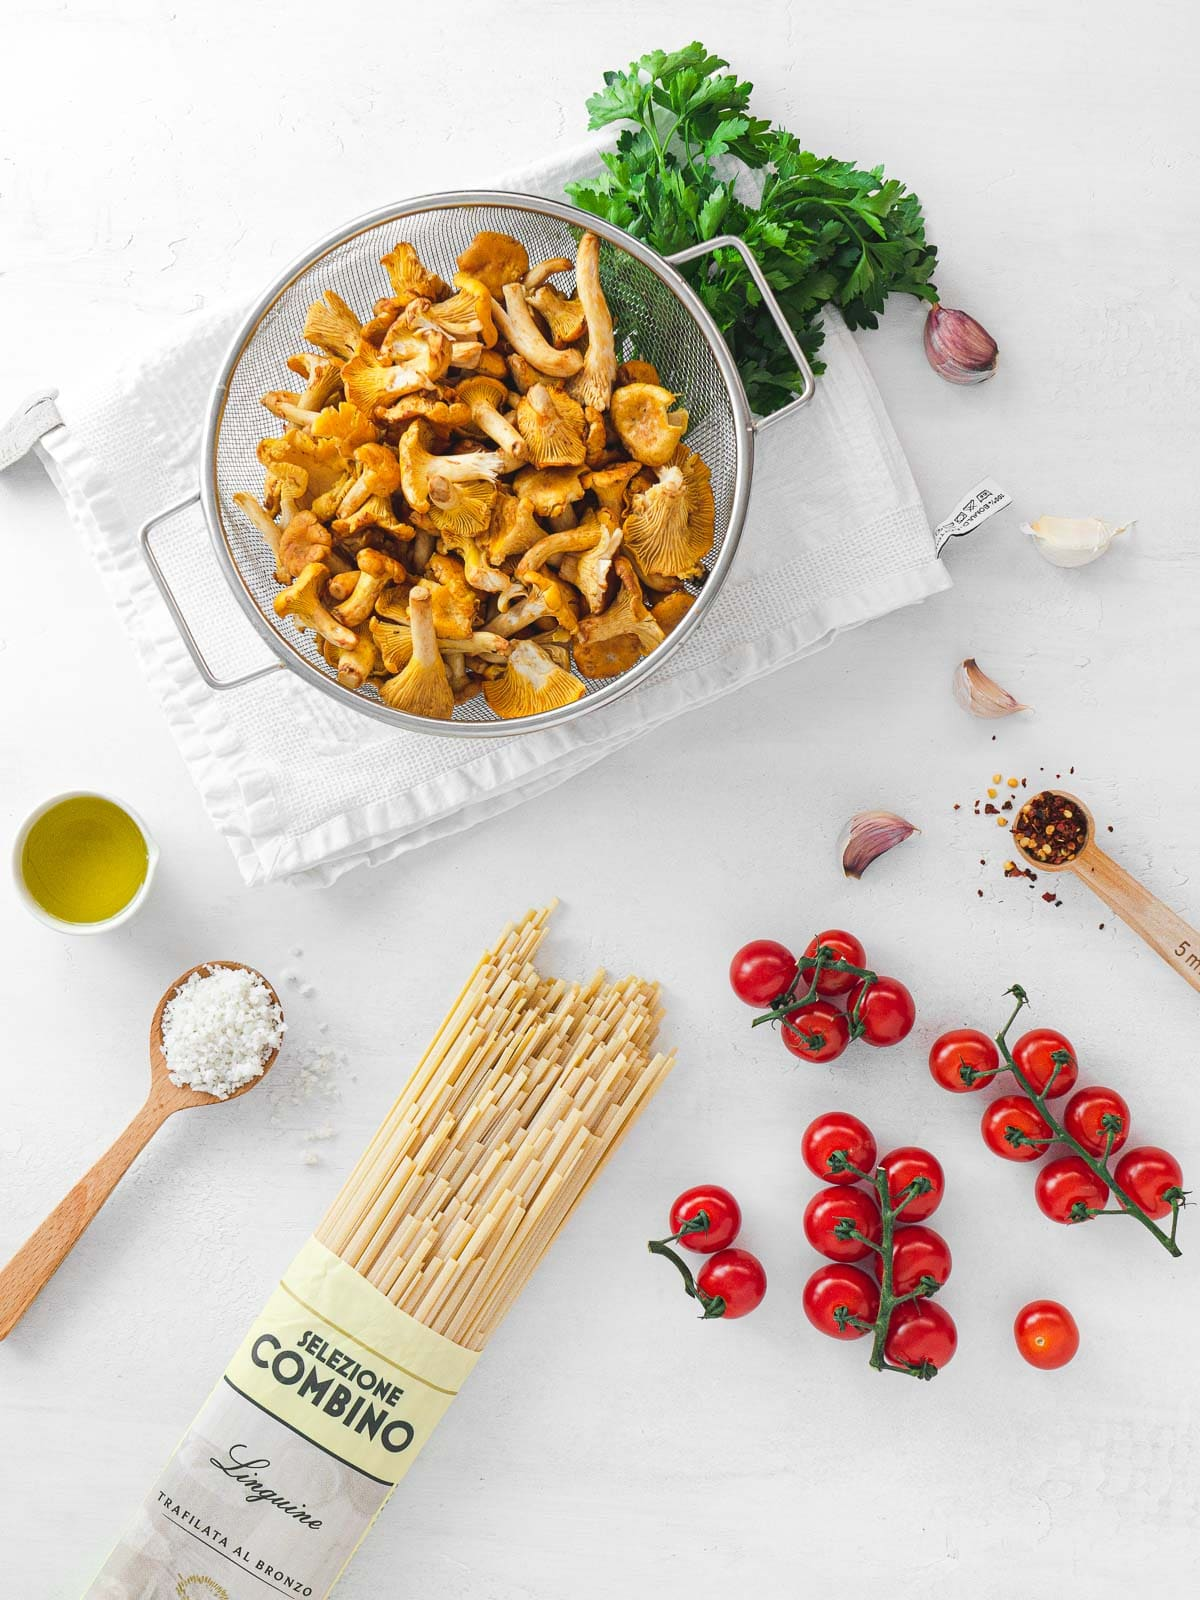 ingredients for pasta and chanterelles